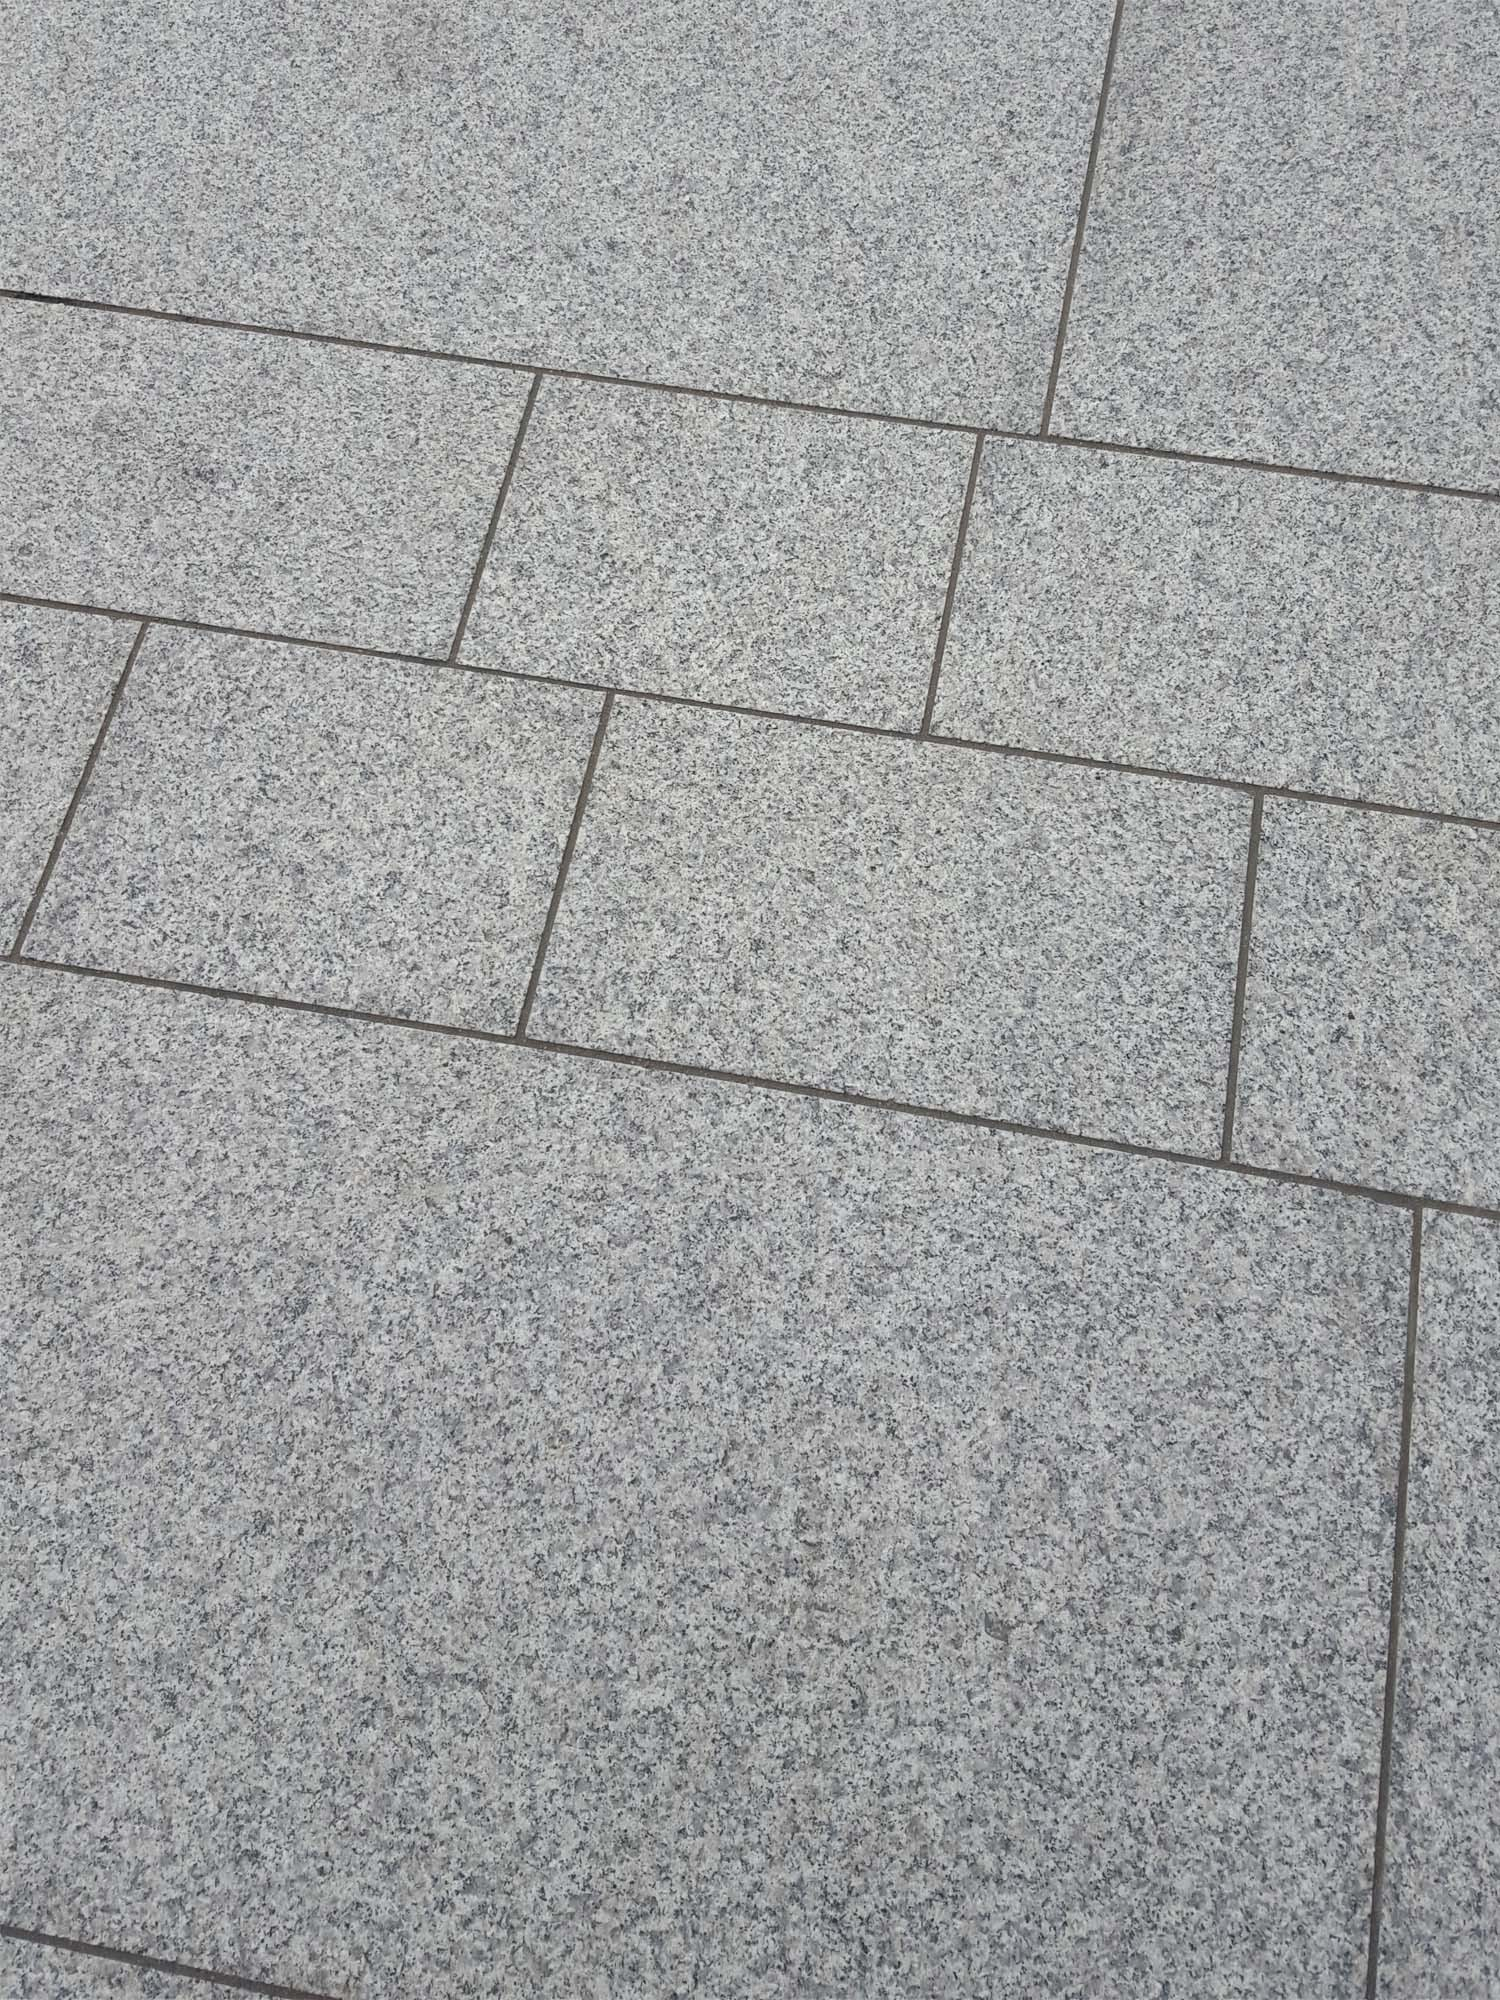 Light Grey Granite Paving Silver Grey Granite Patio Slabs